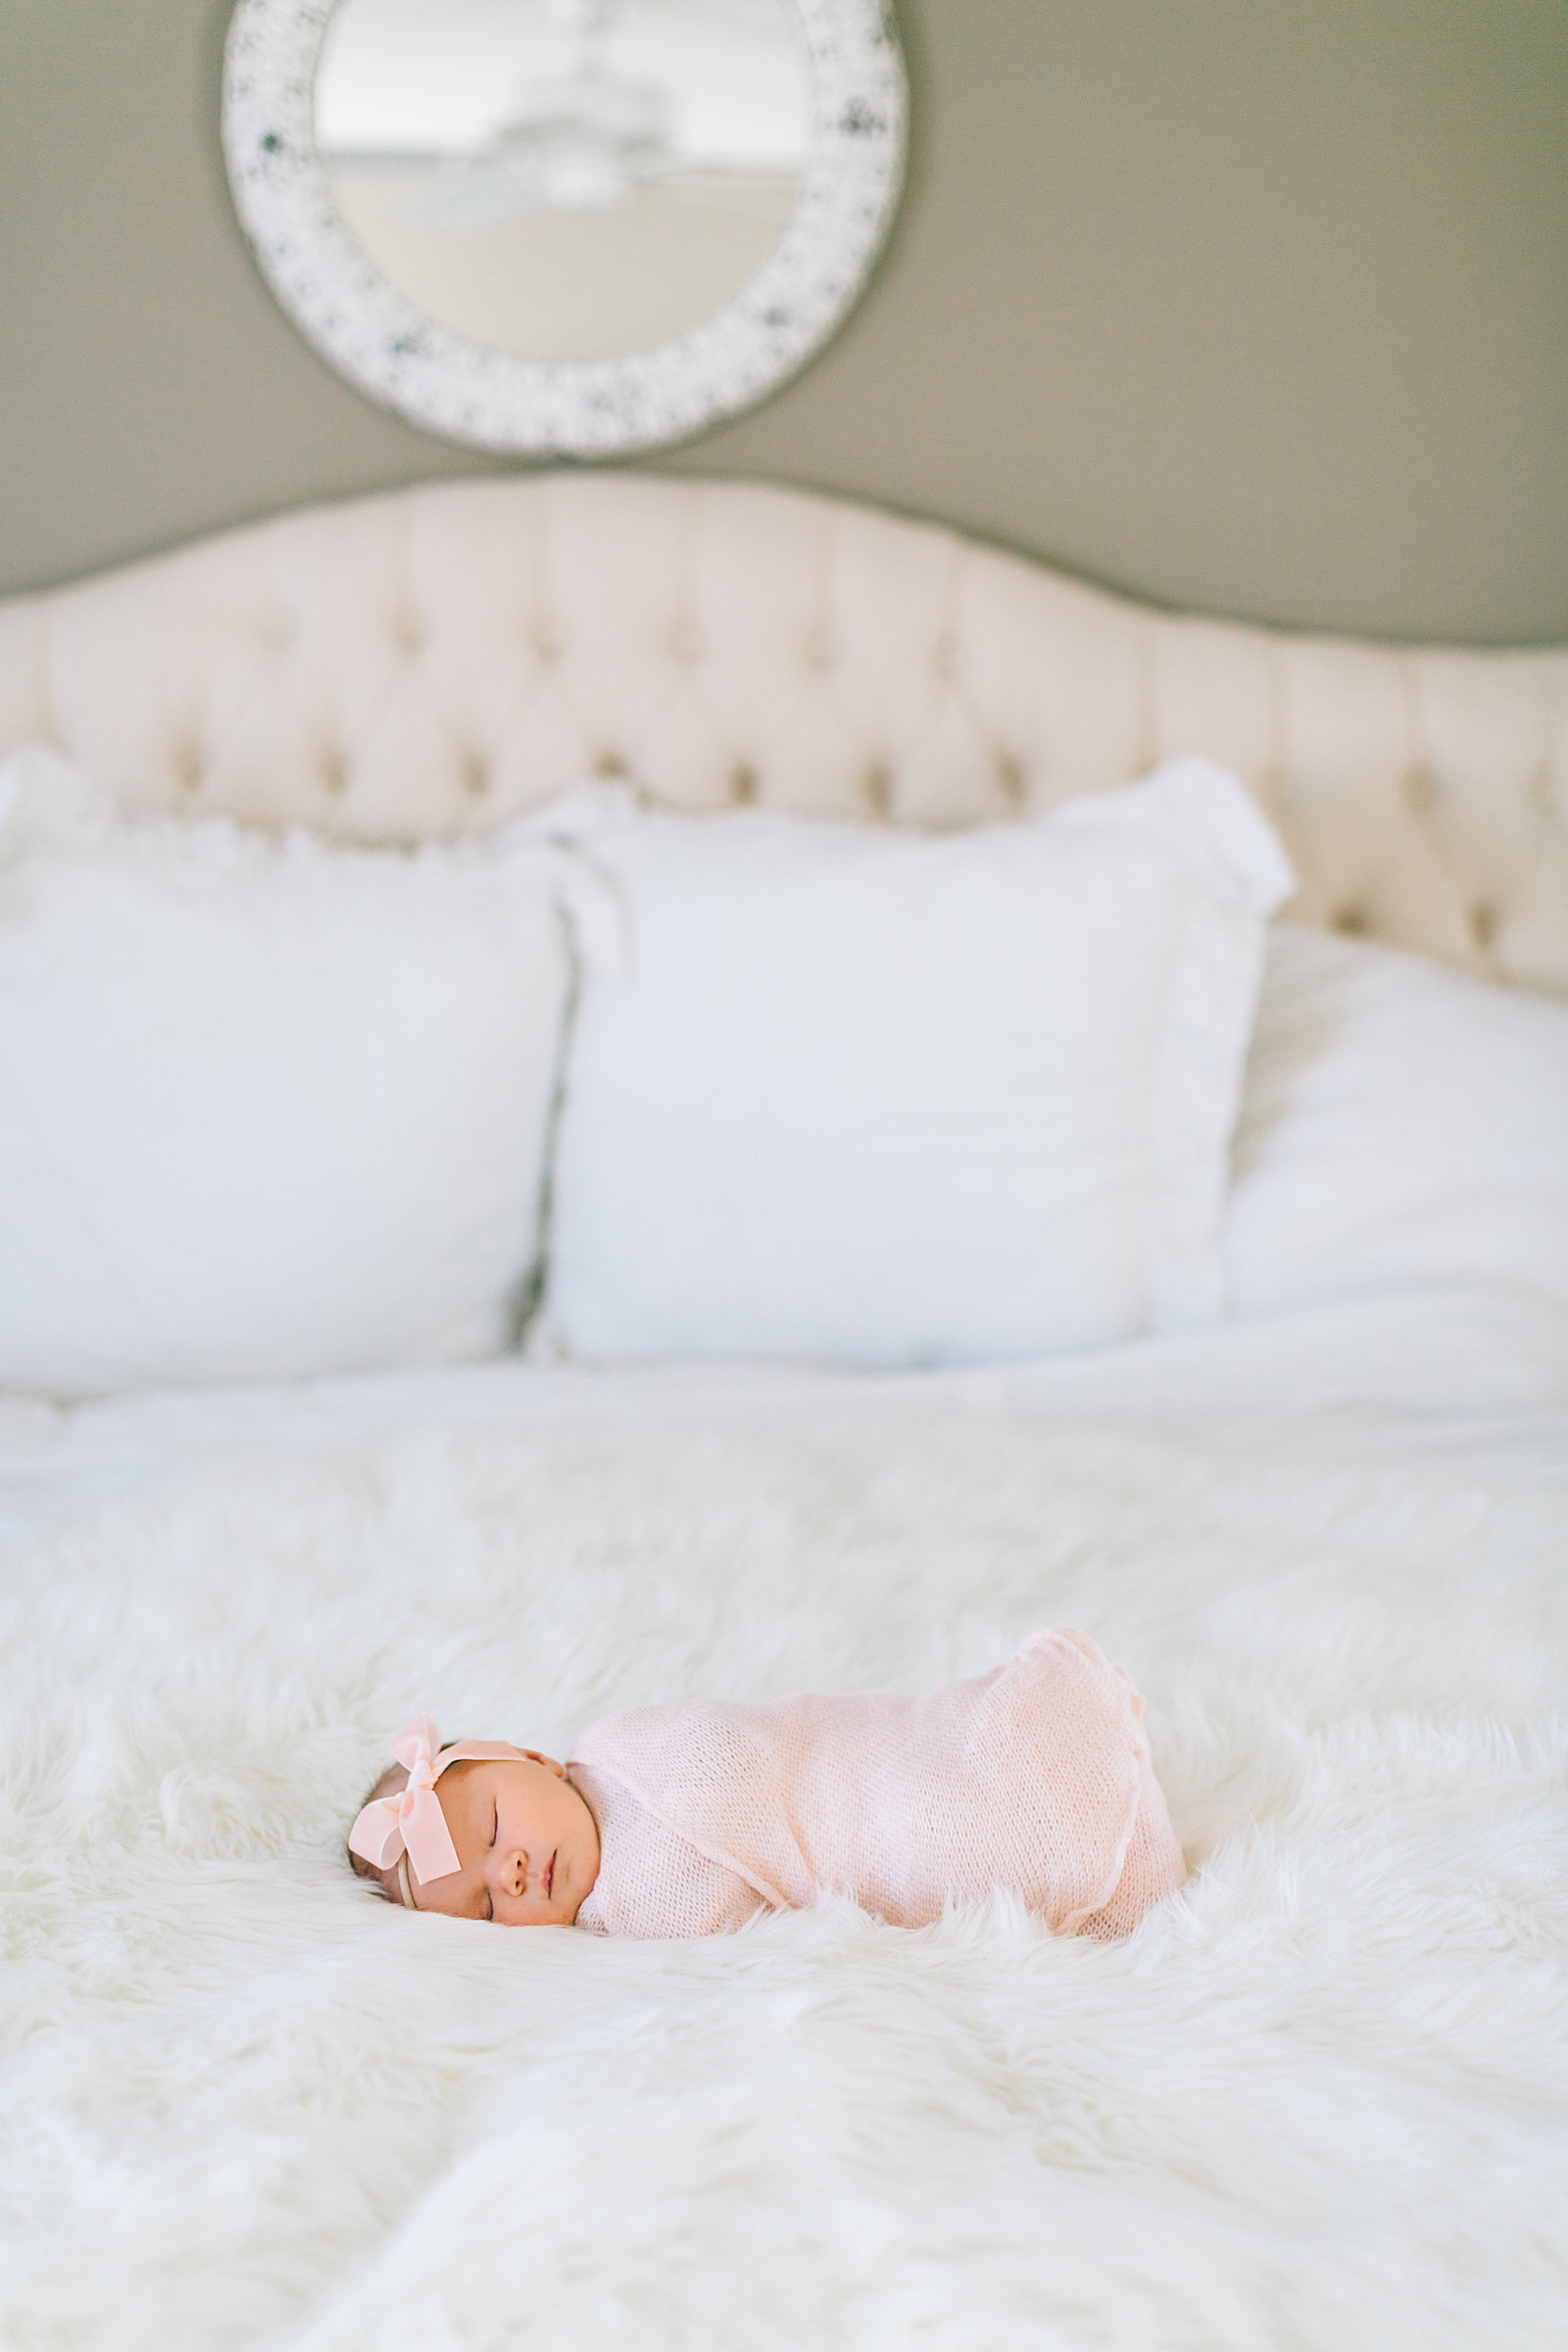 San-Juan-Capistrano-Beach-Newborn-Lifestyle-Photos_26